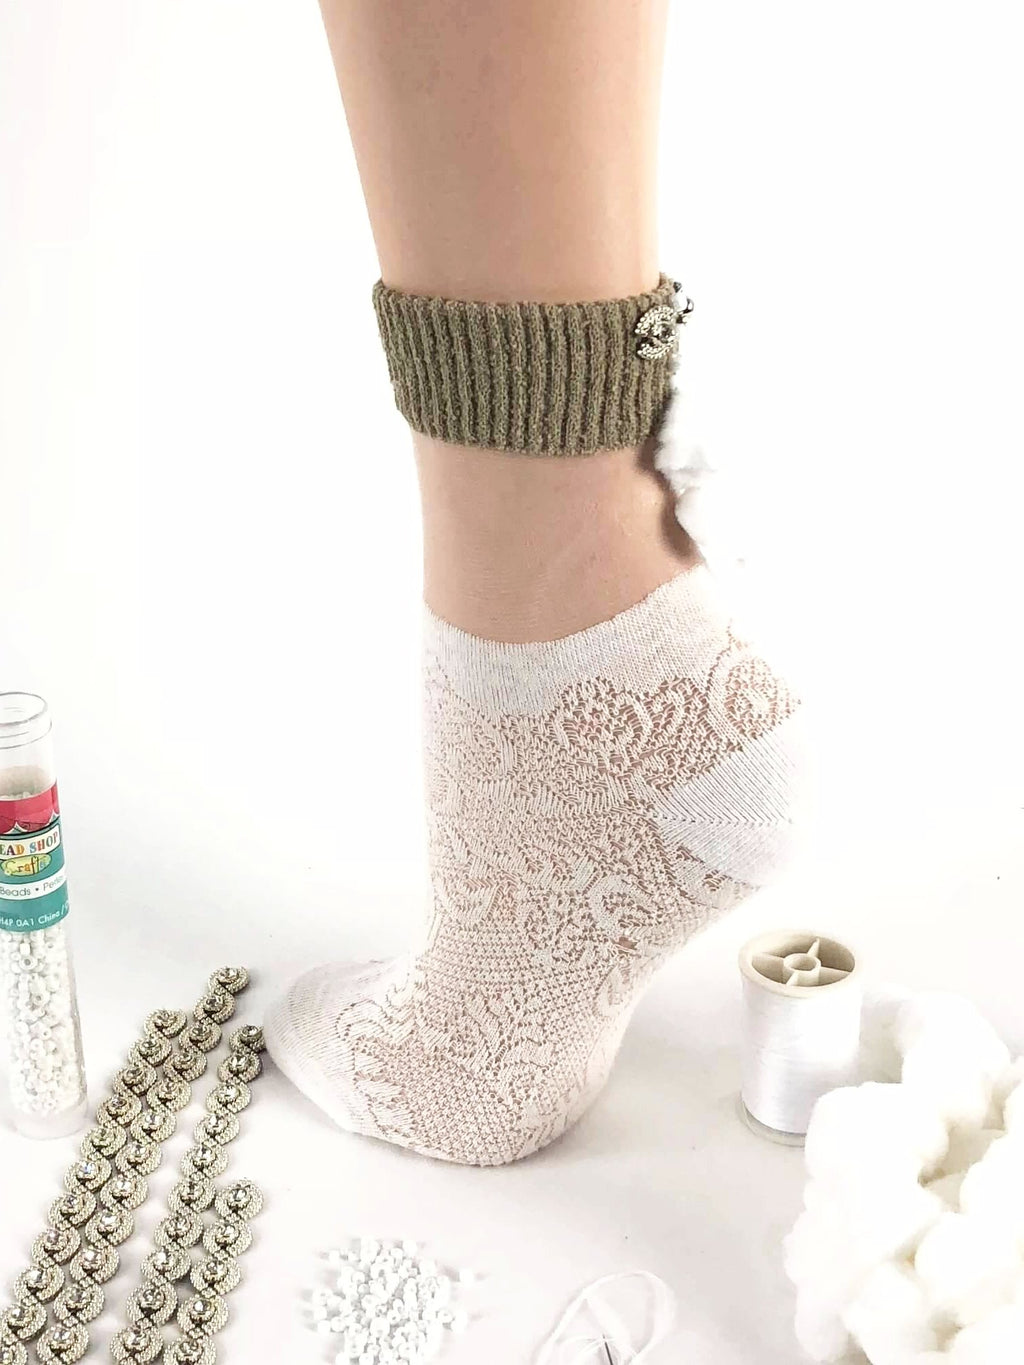 Stylish White Patterned Sheer Socks - Global Trendz Fashion®